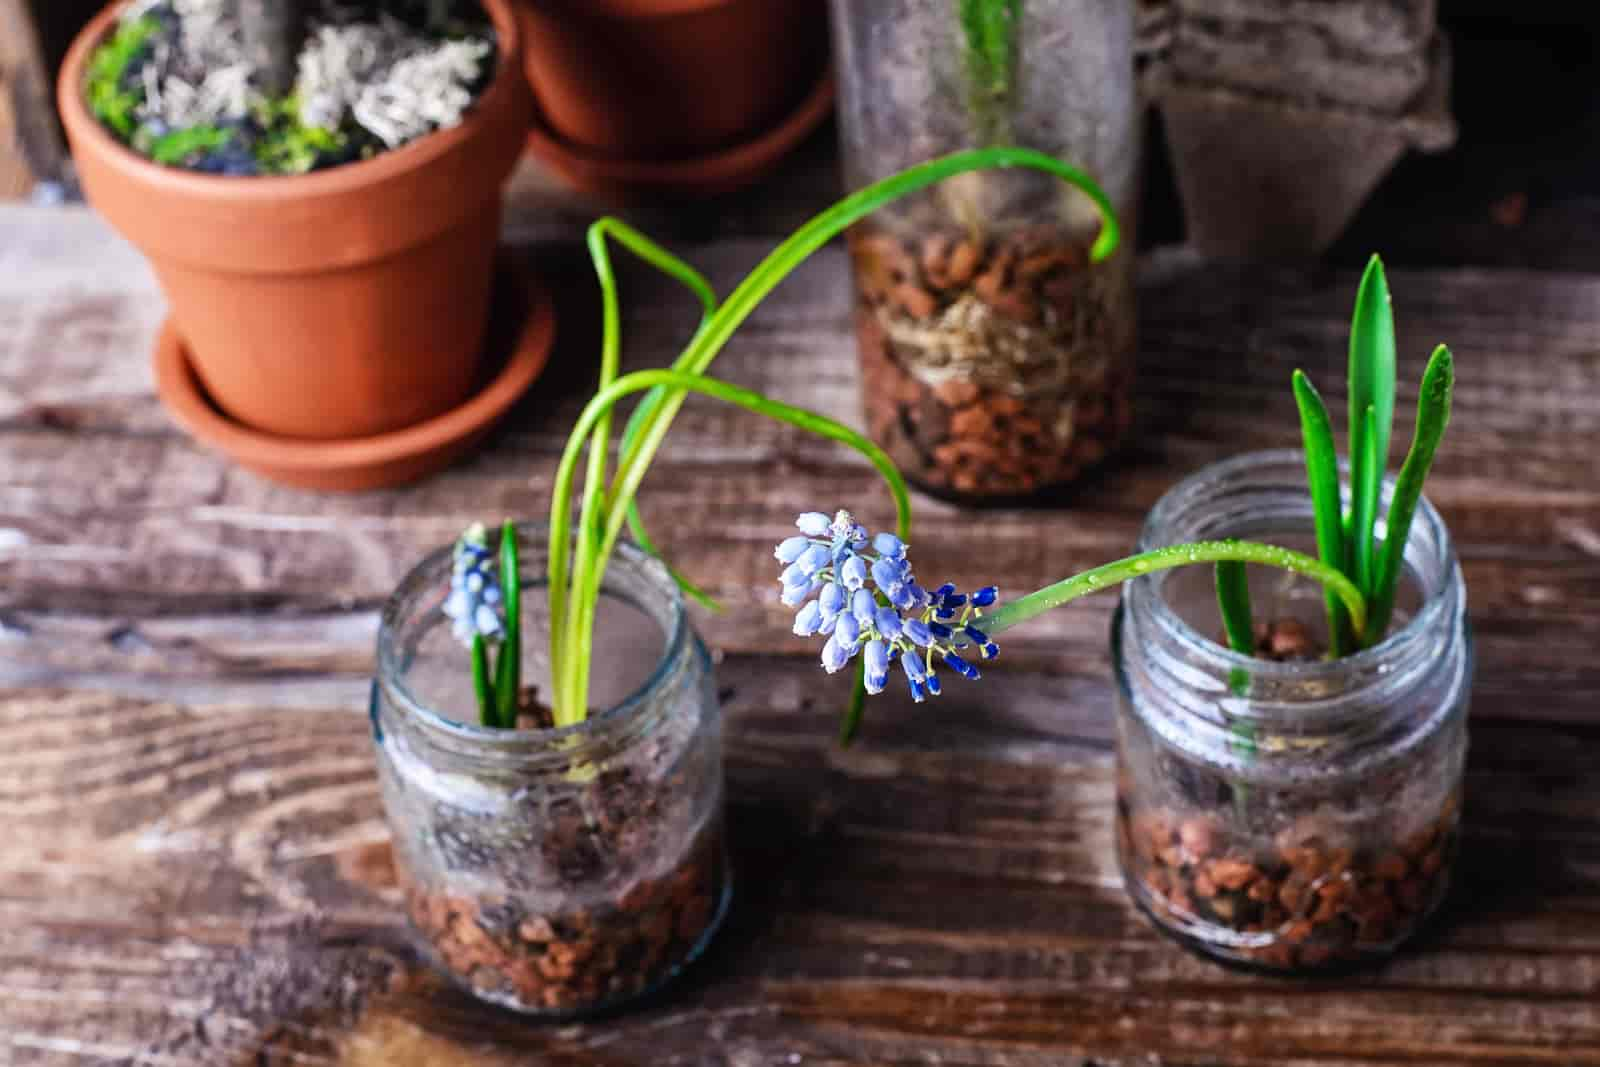 Plants That Don't Need Drainage Holes